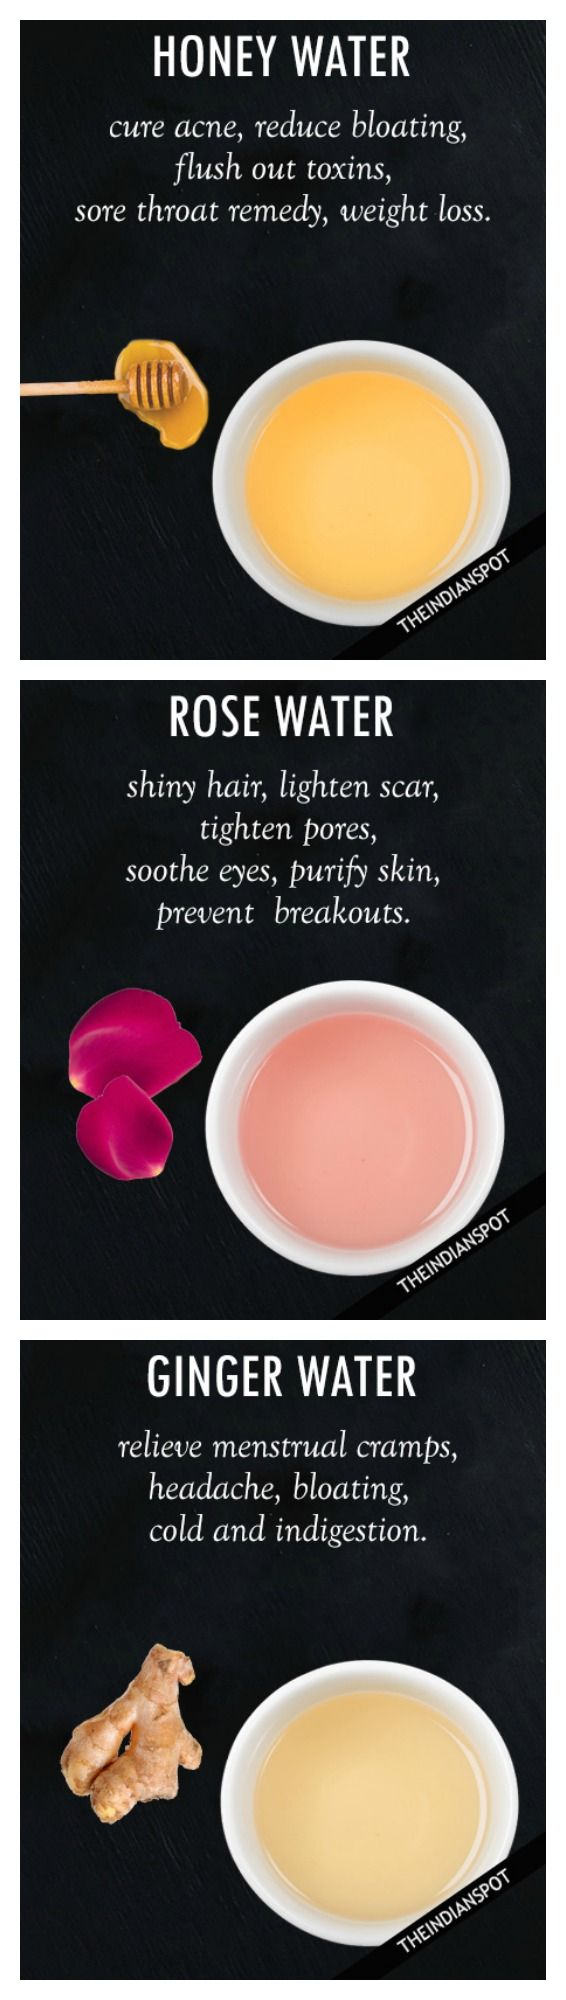 AMAZING WATER REMEDIES http://fancytemplestore.com